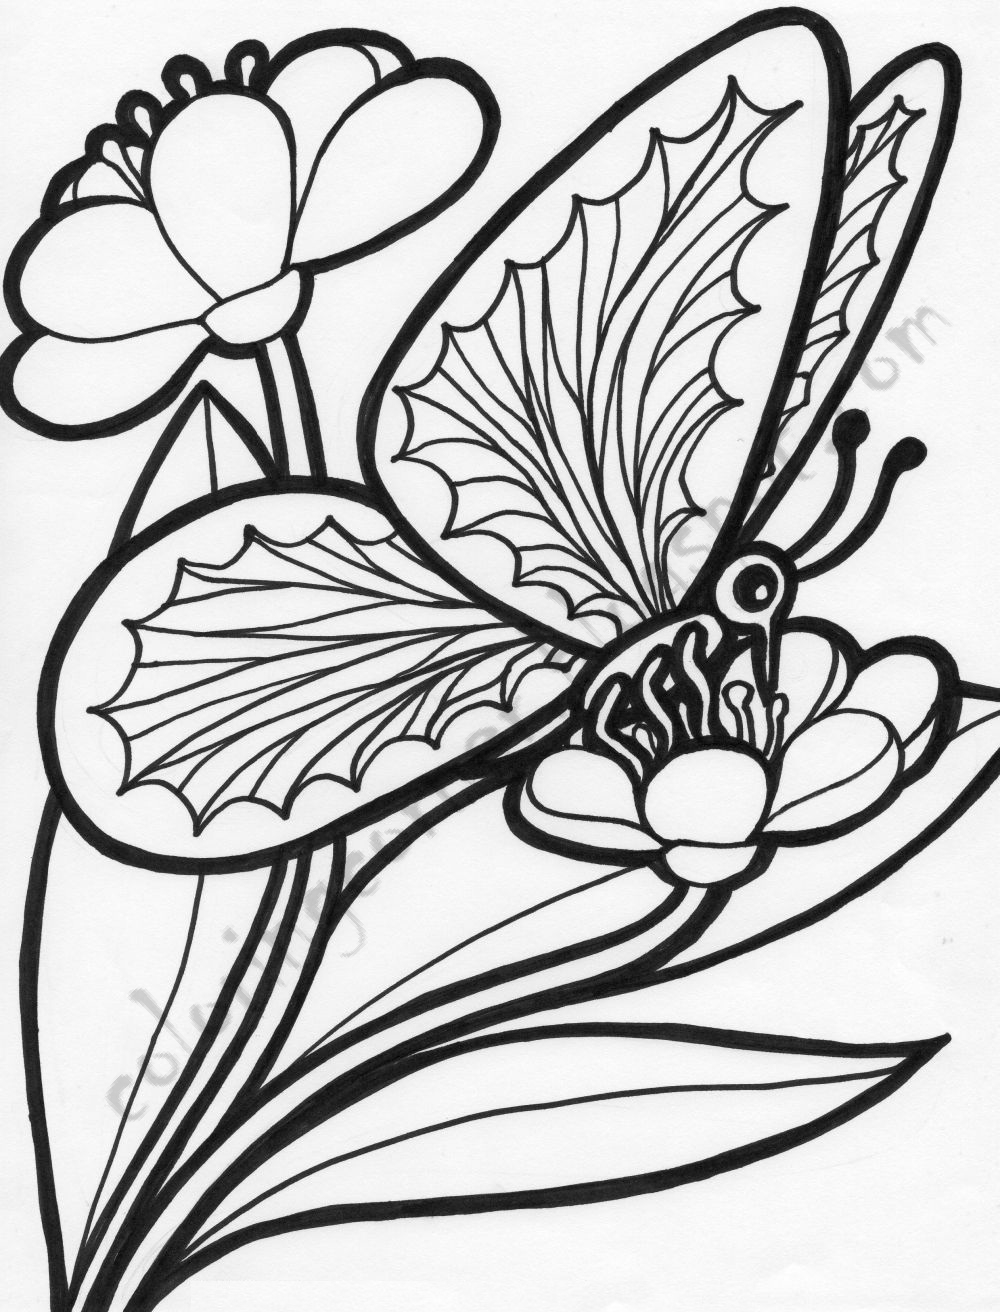 printable butterfly coloring page butterfly coloring pages download and print butterfly page coloring printable butterfly